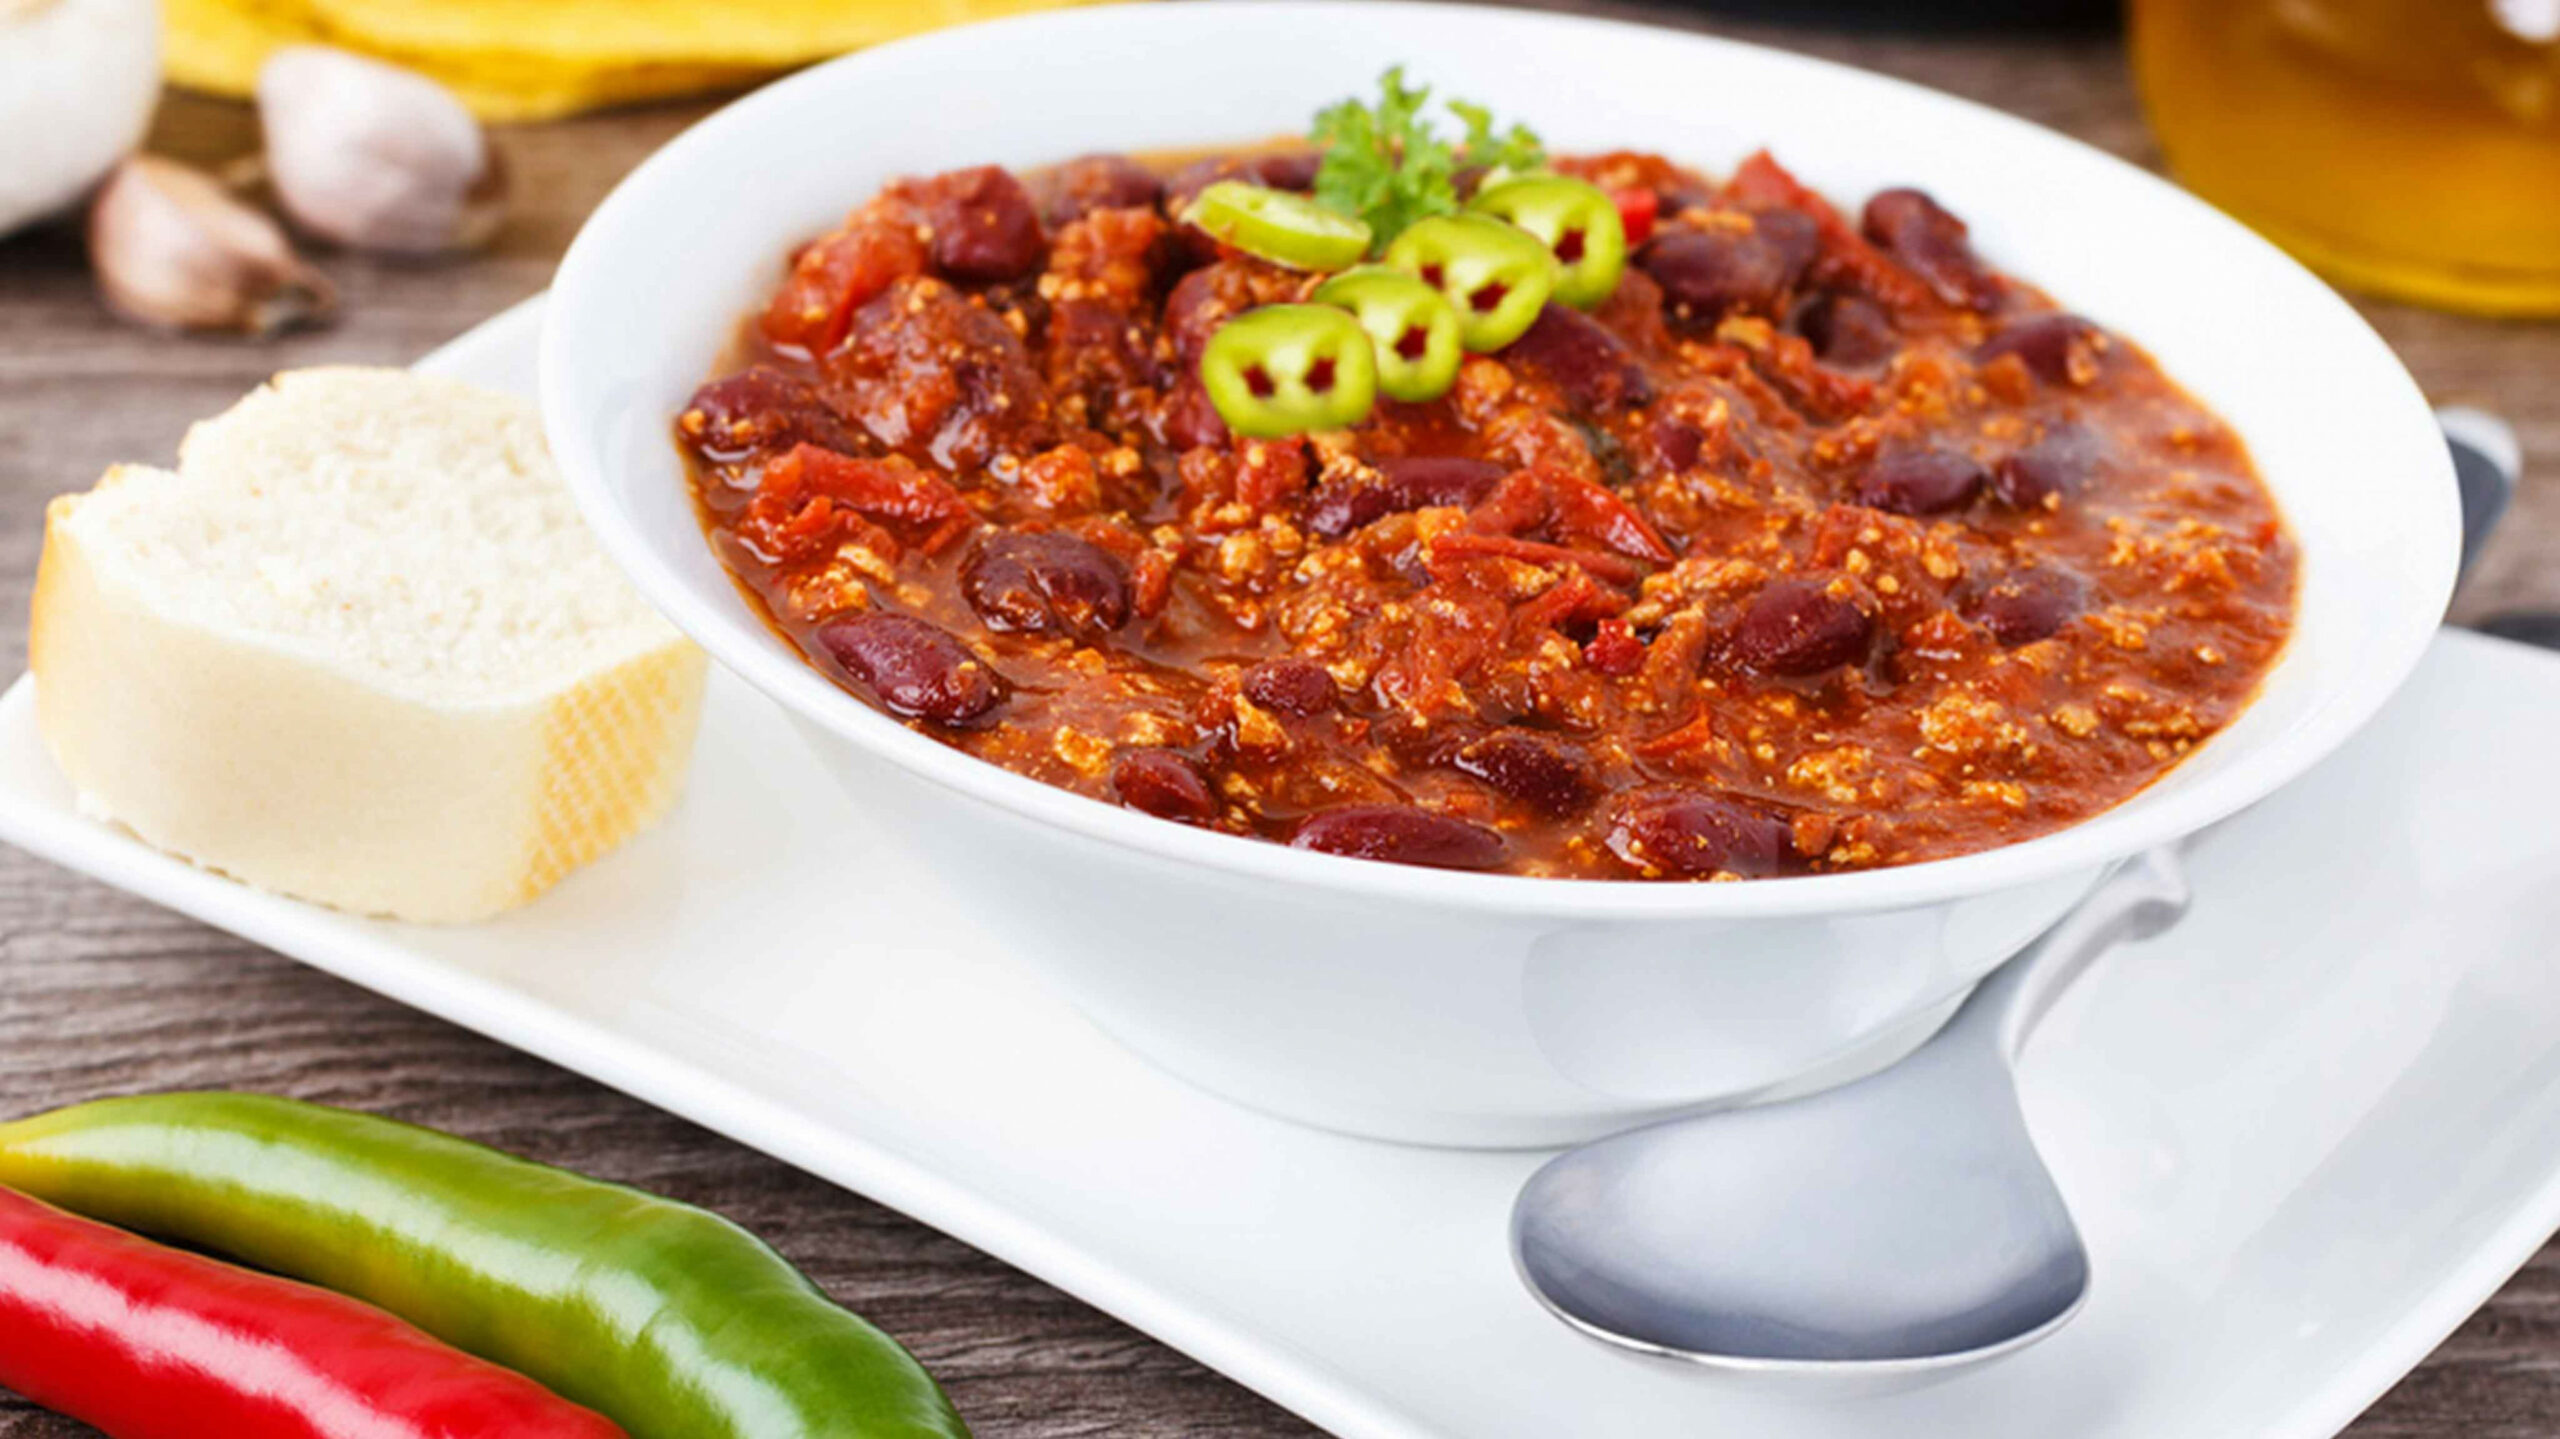 High Fiber Chili - food recipes high in fiber